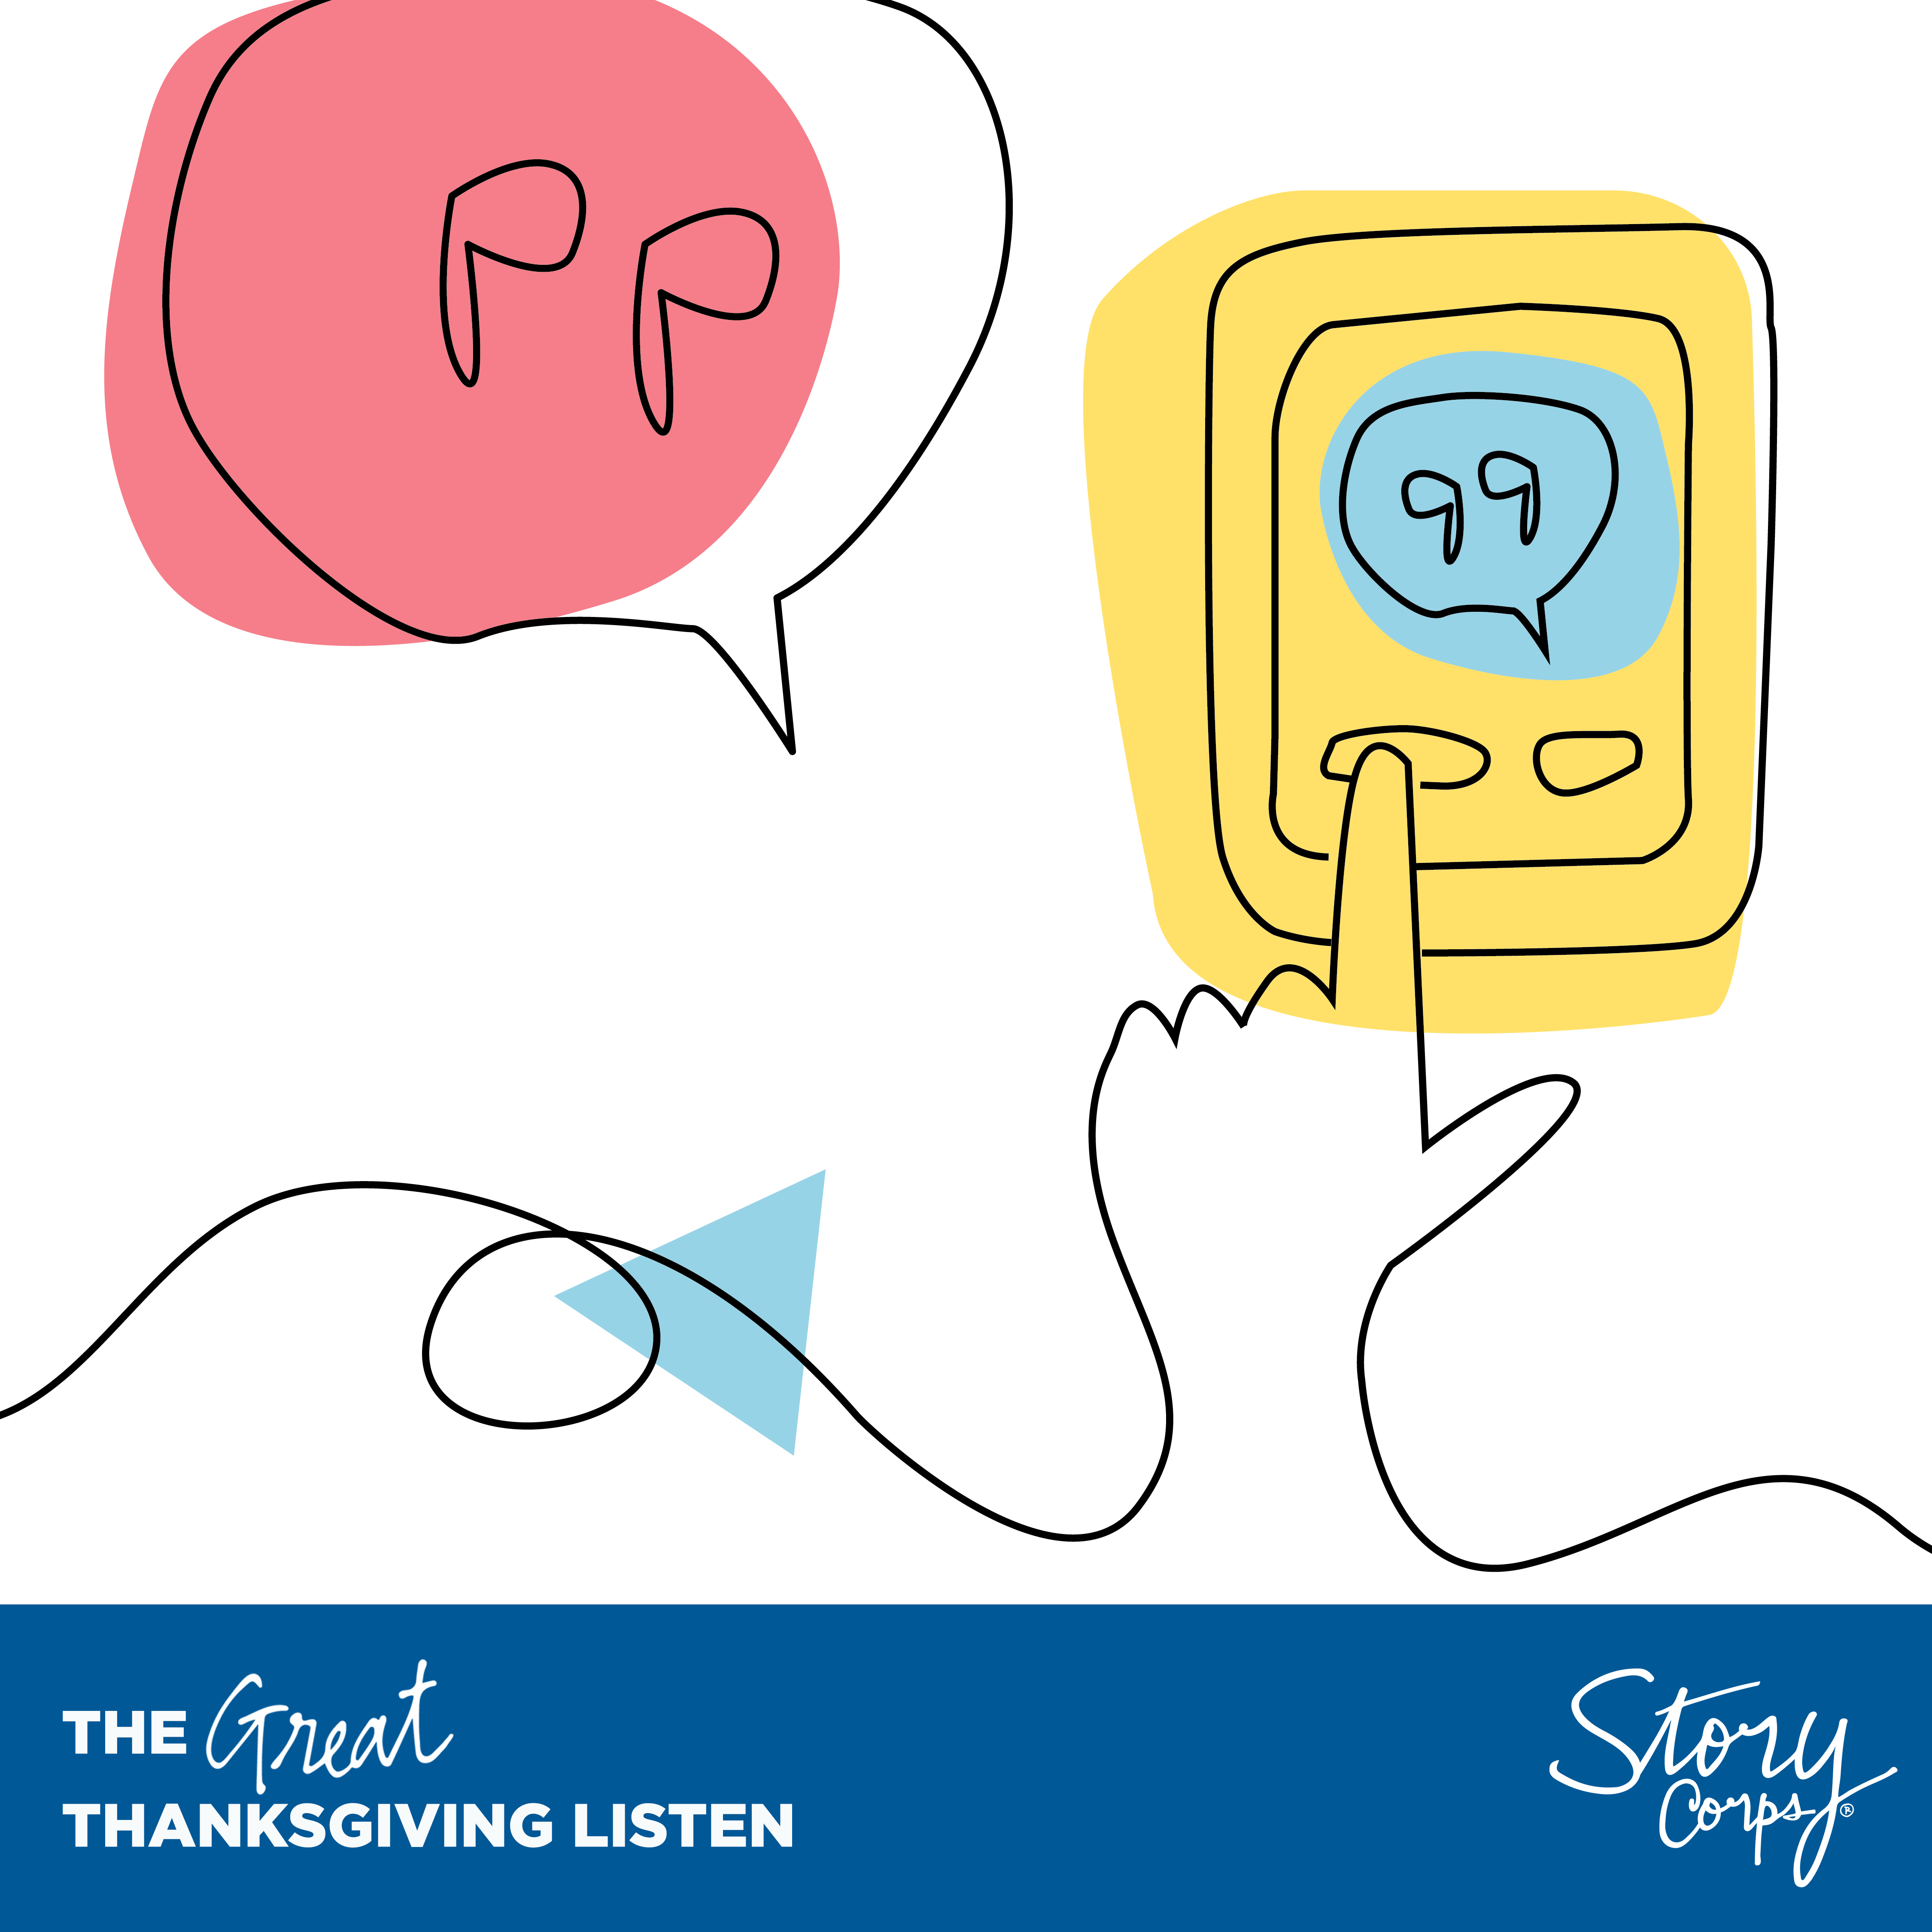 Free Toolkit for StoryCorps' The Great Thanksgiving Listen